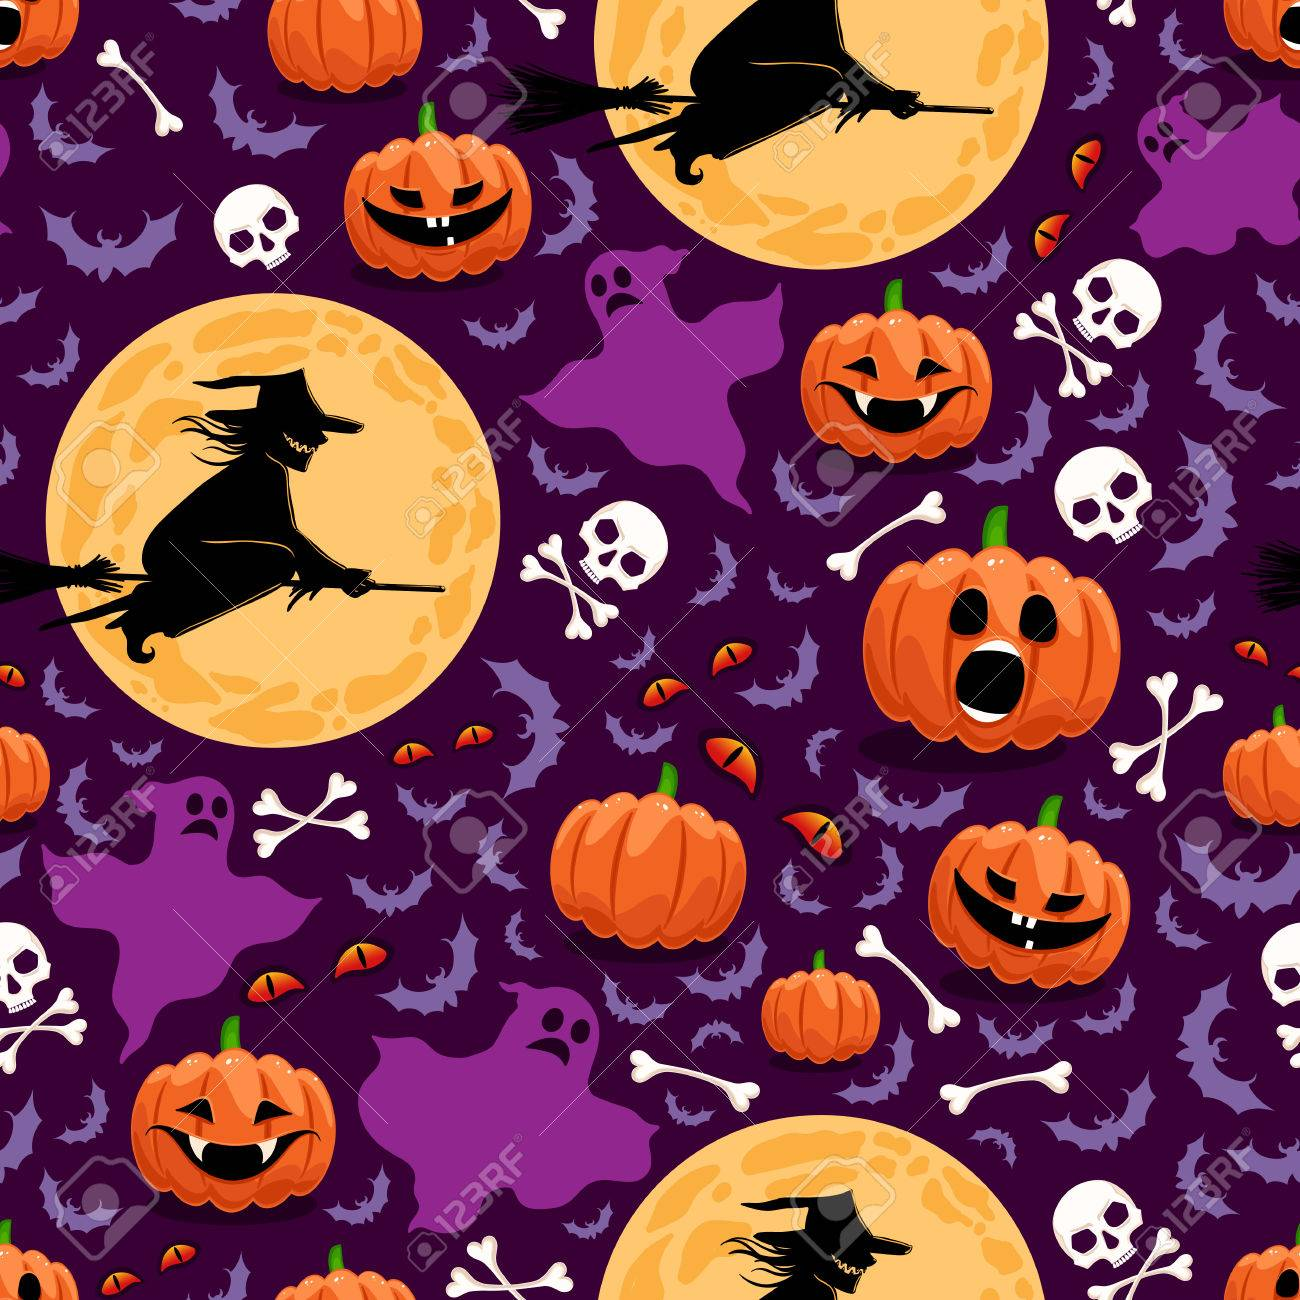 seamless background for Halloween with pumpkins, witches and ghosts - 22502610